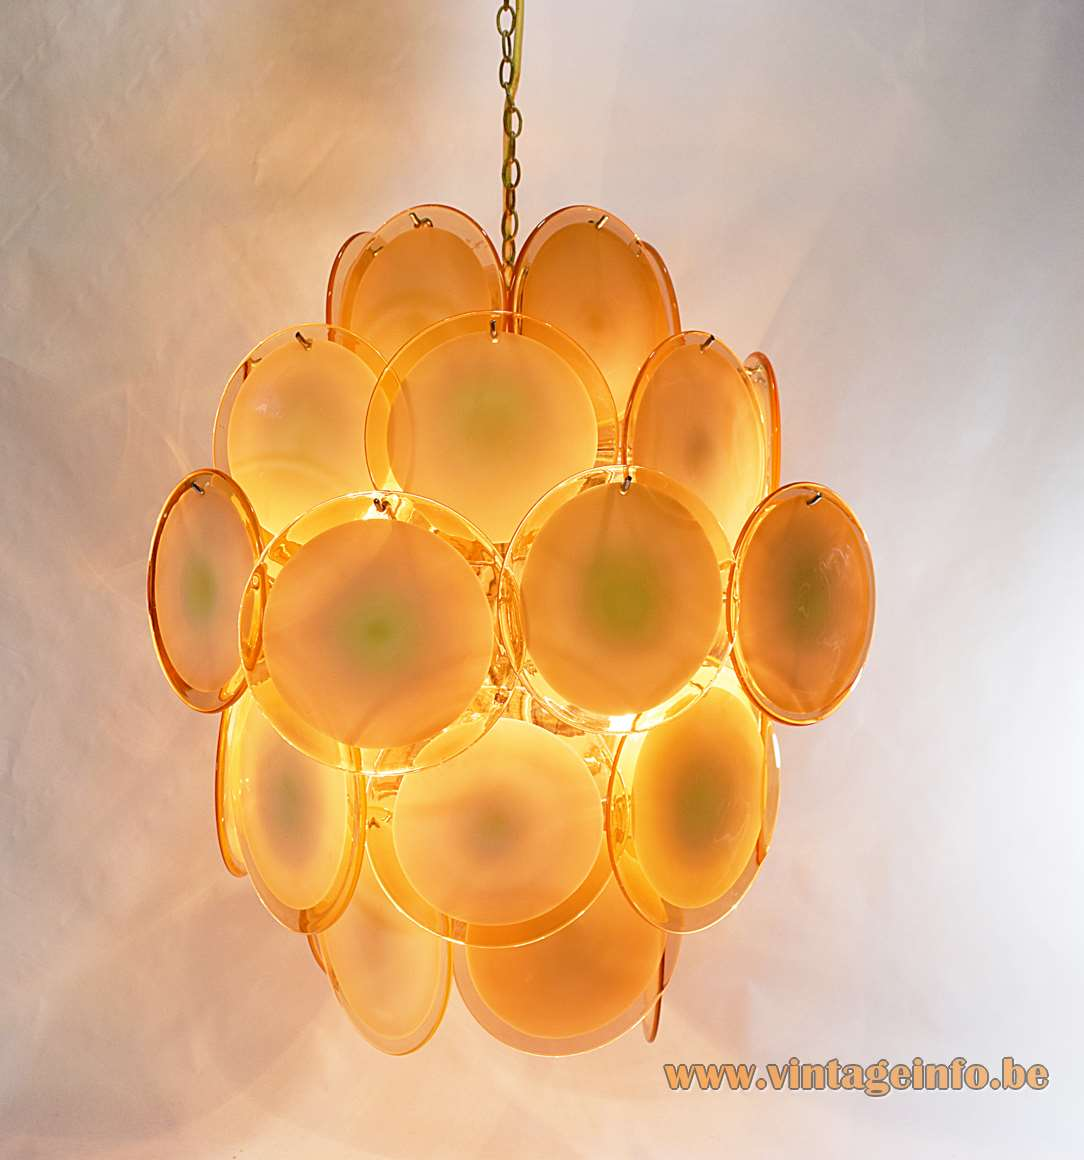 Gino Vistosi salmon pink discs chandelier 36 Murano glass dishes chrome wire frame Mazzega 1960s 1970s